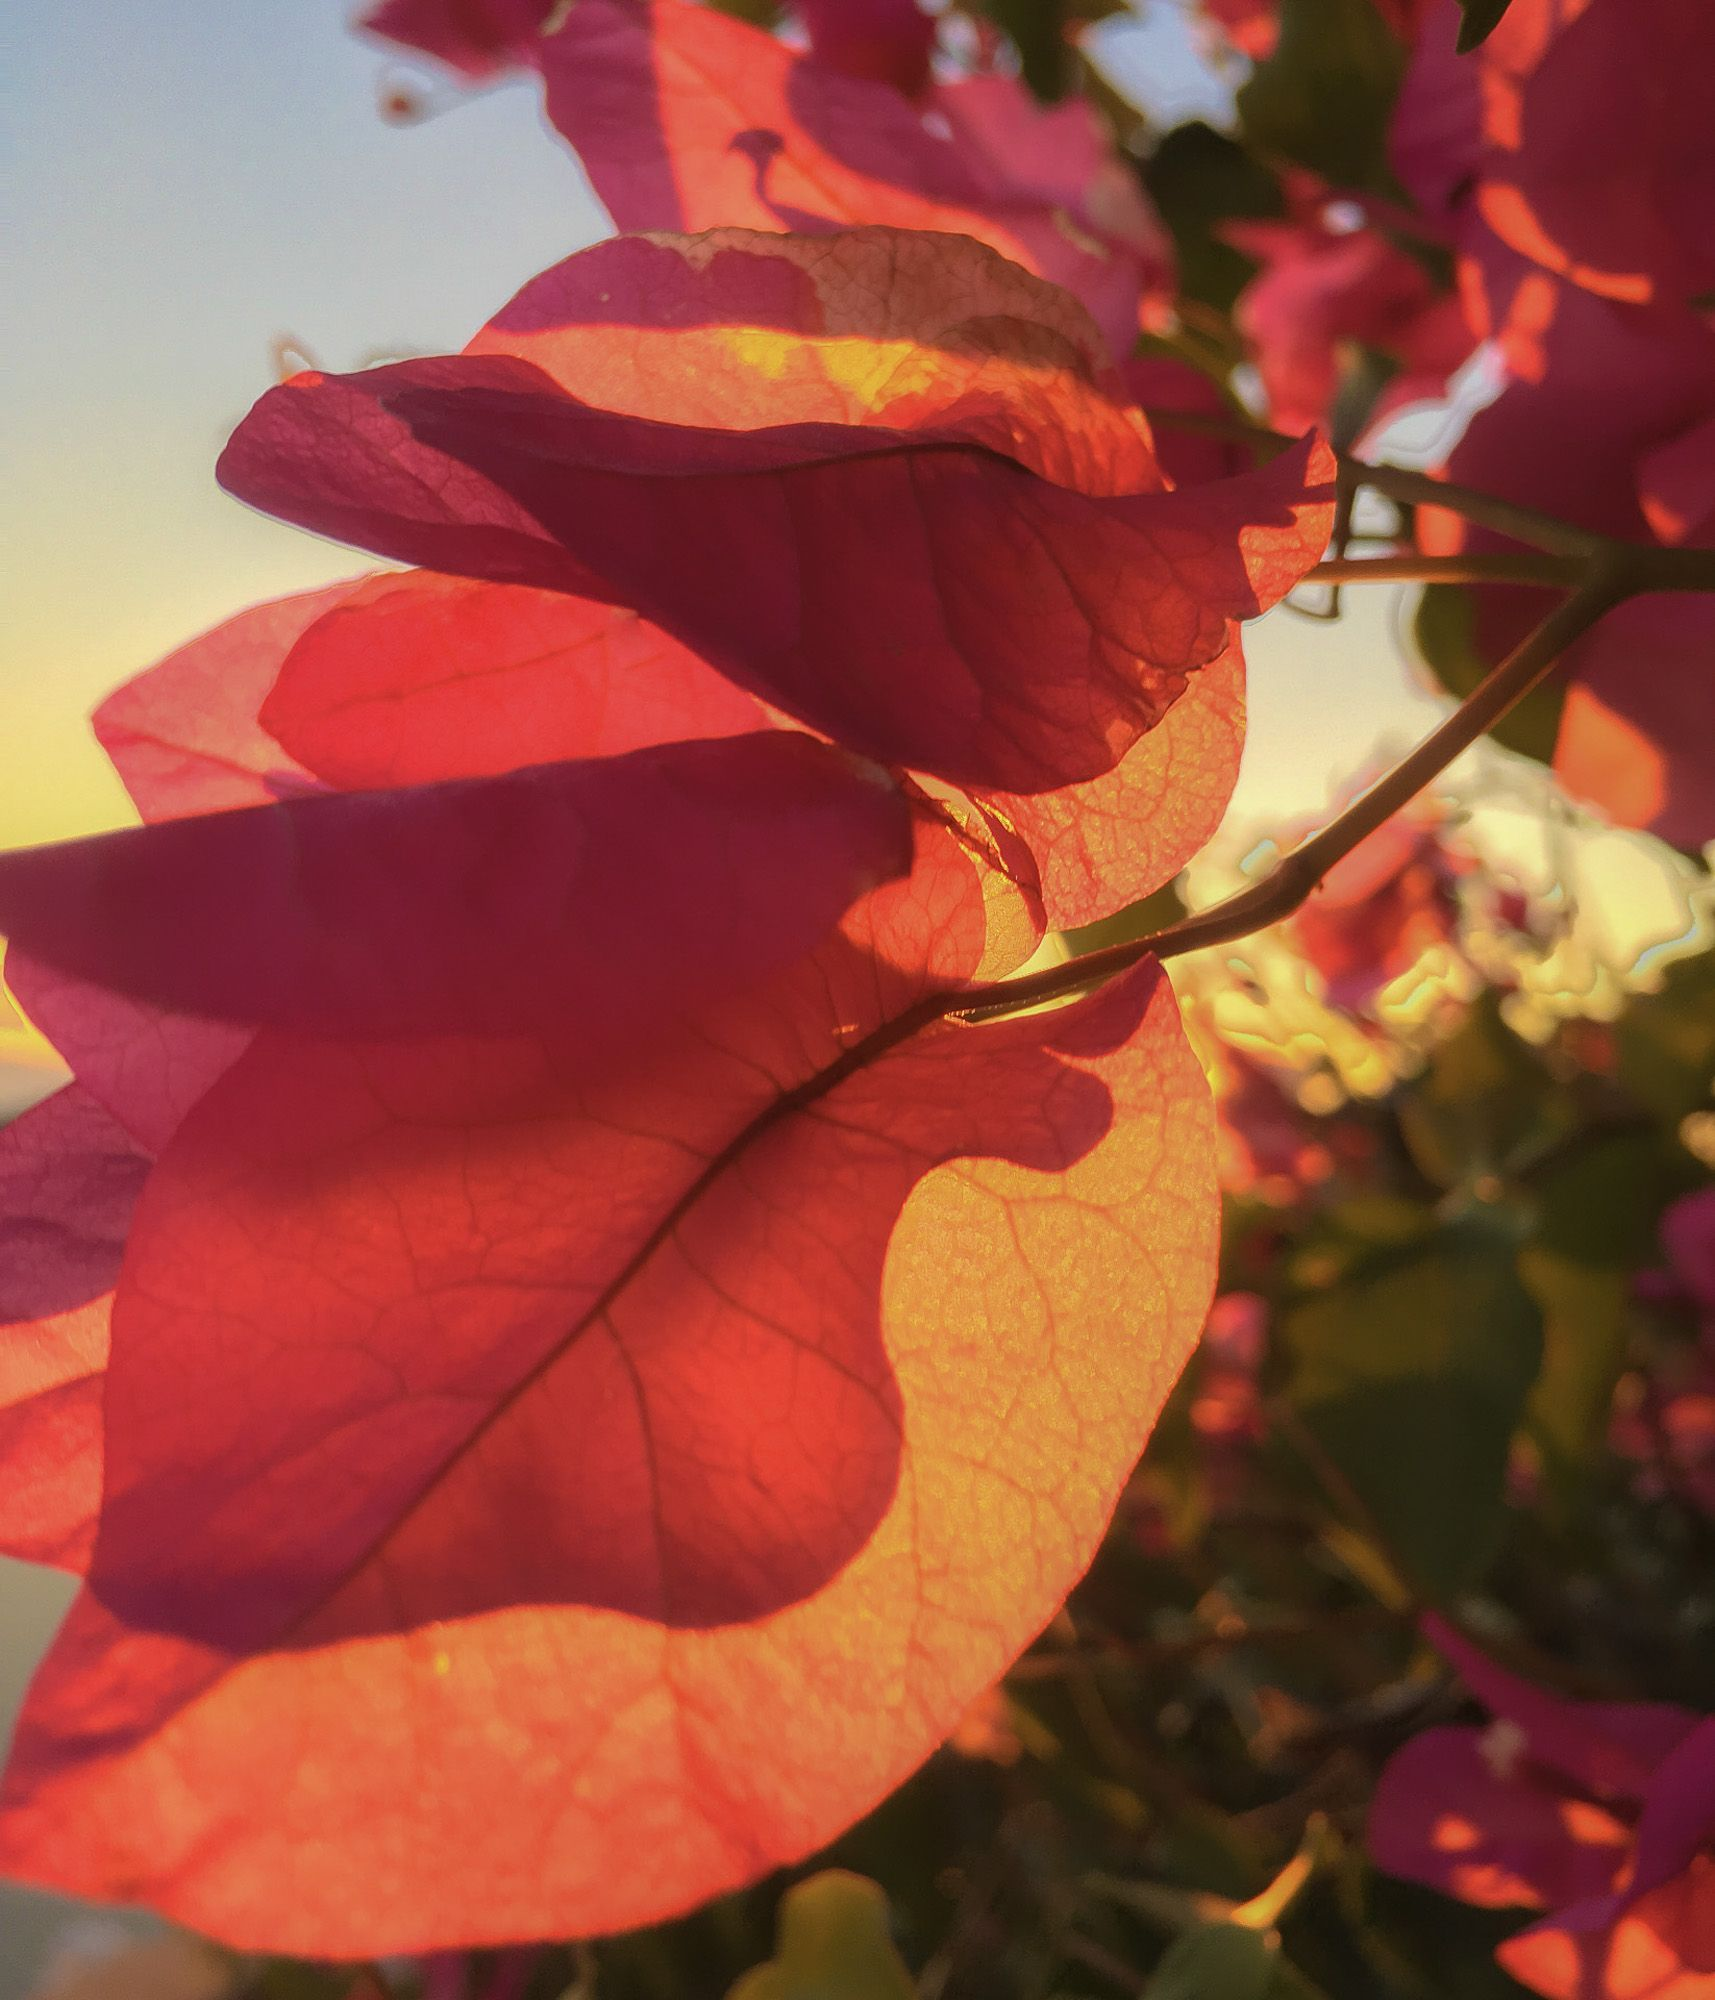 A suggestion of sunset through Bougainvillea blossoms...